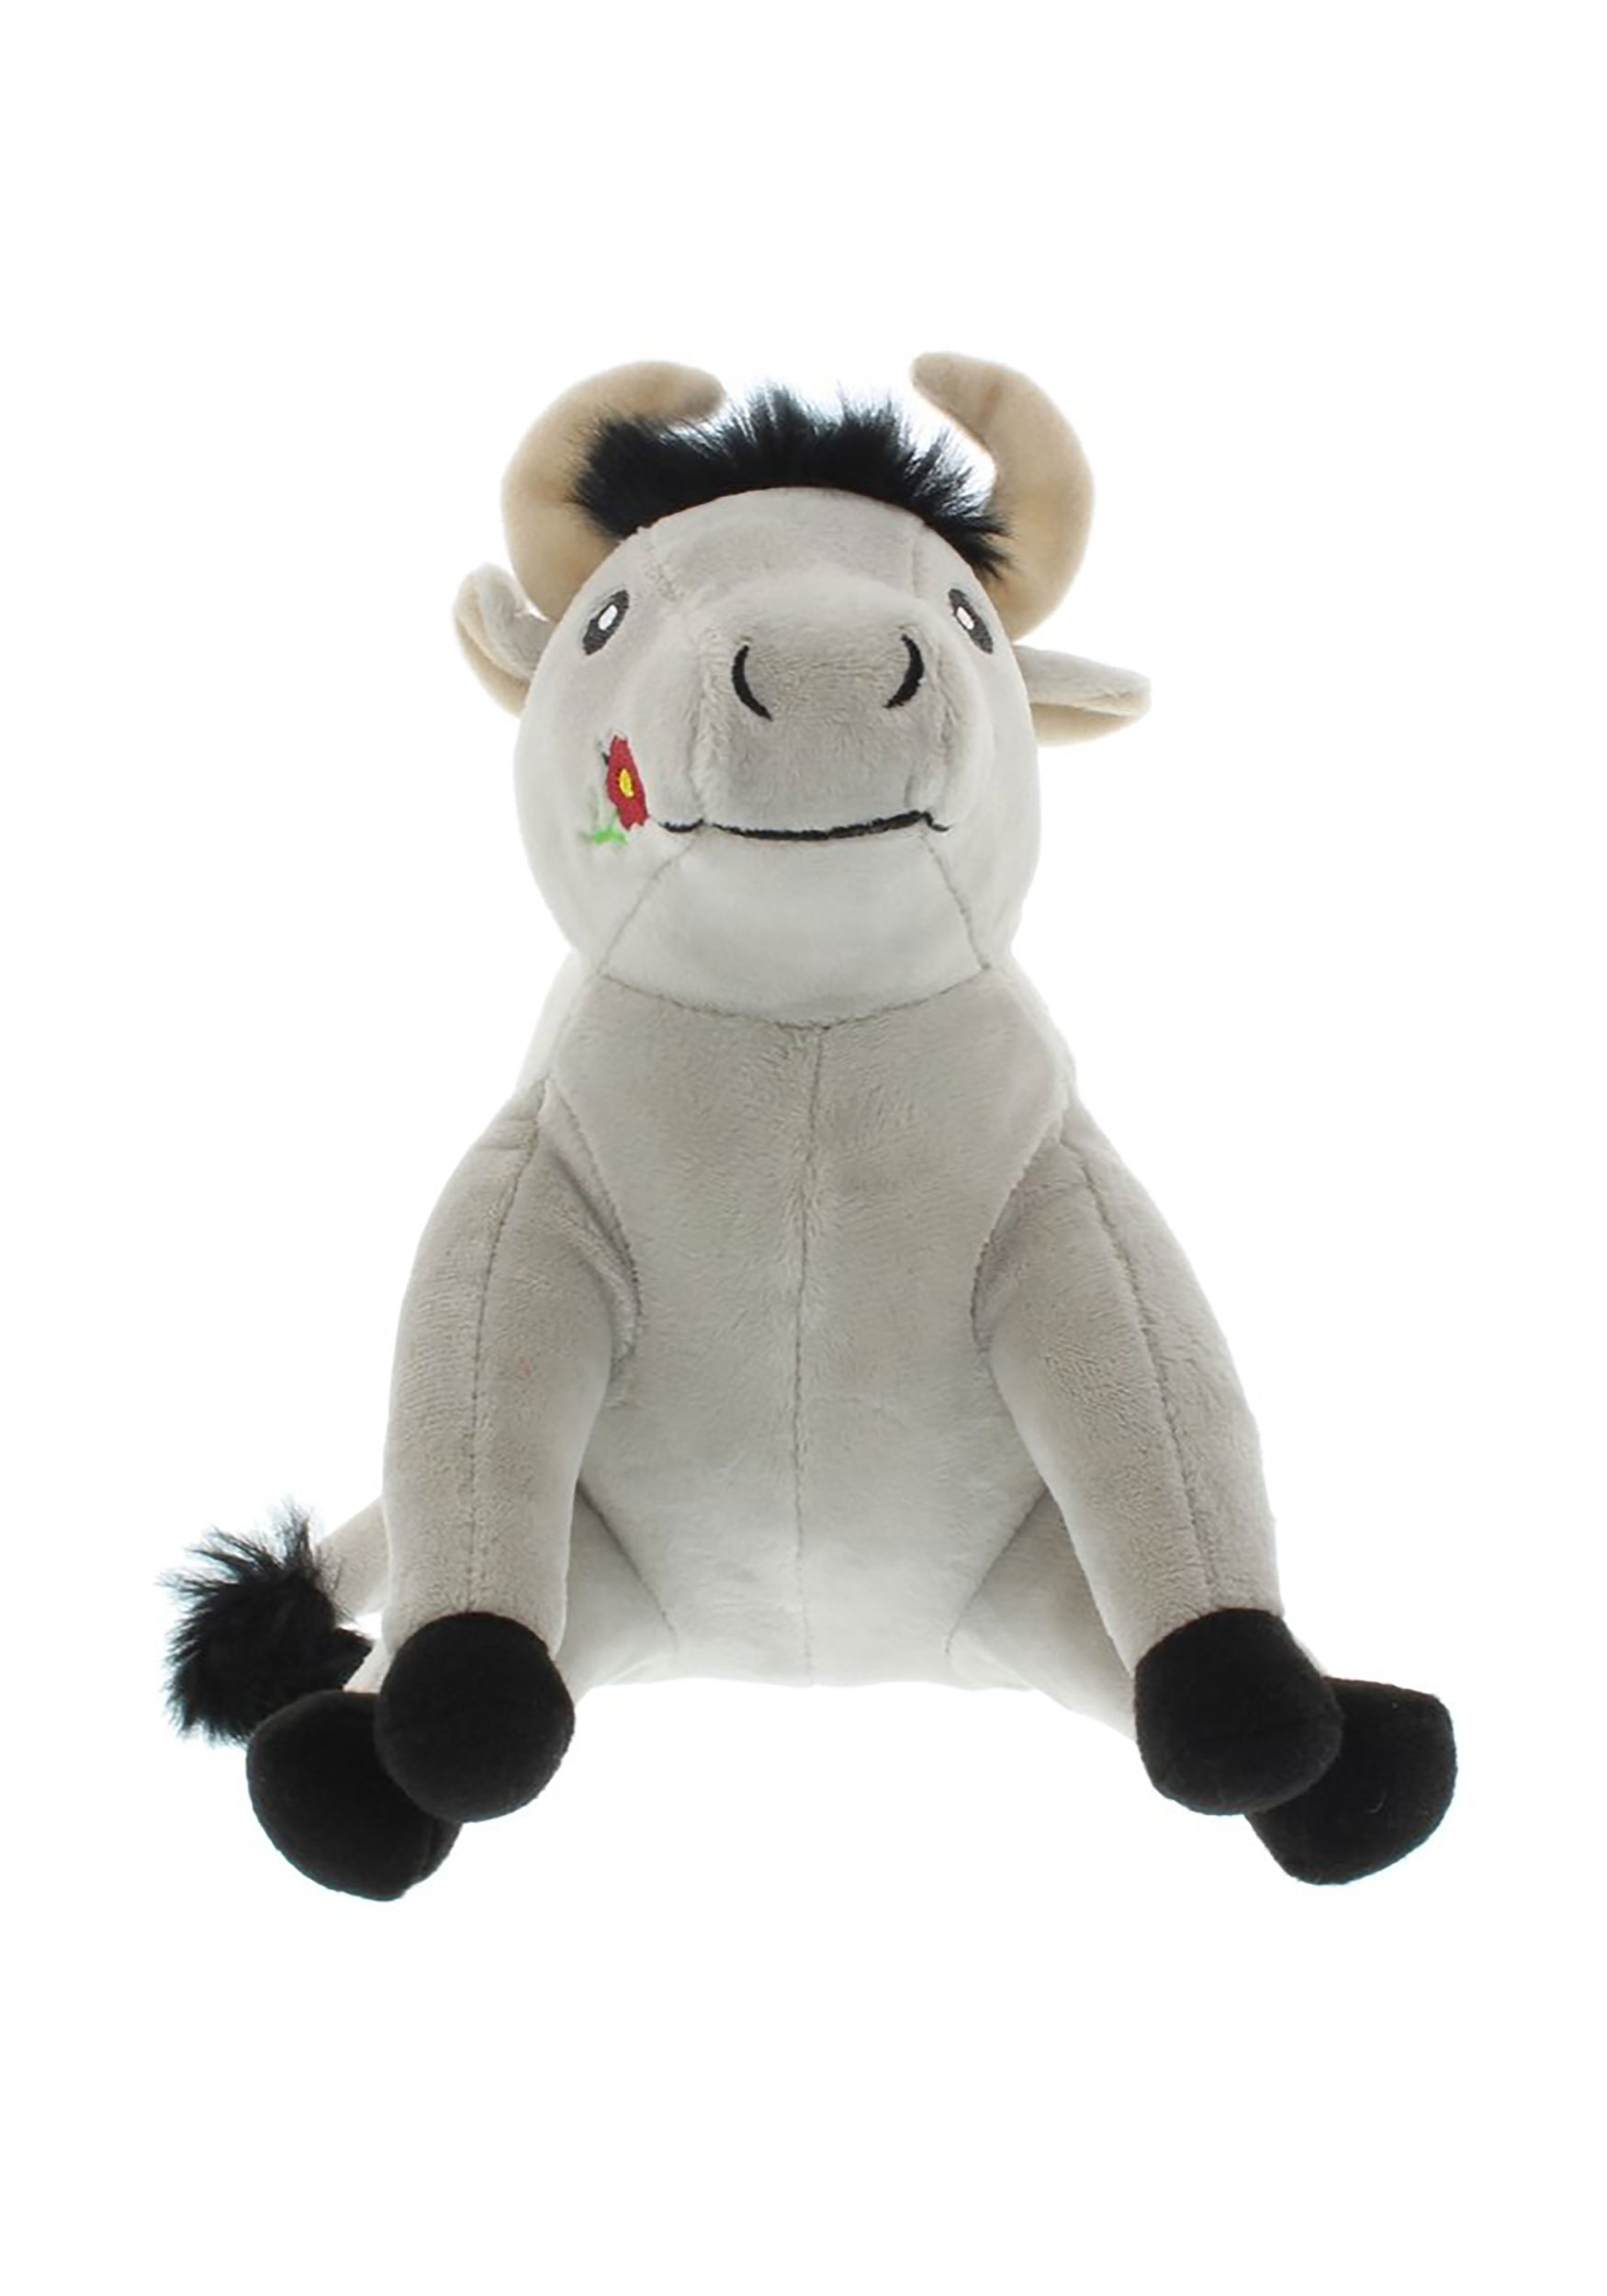 Ferdinand the Bull Plush 9.5